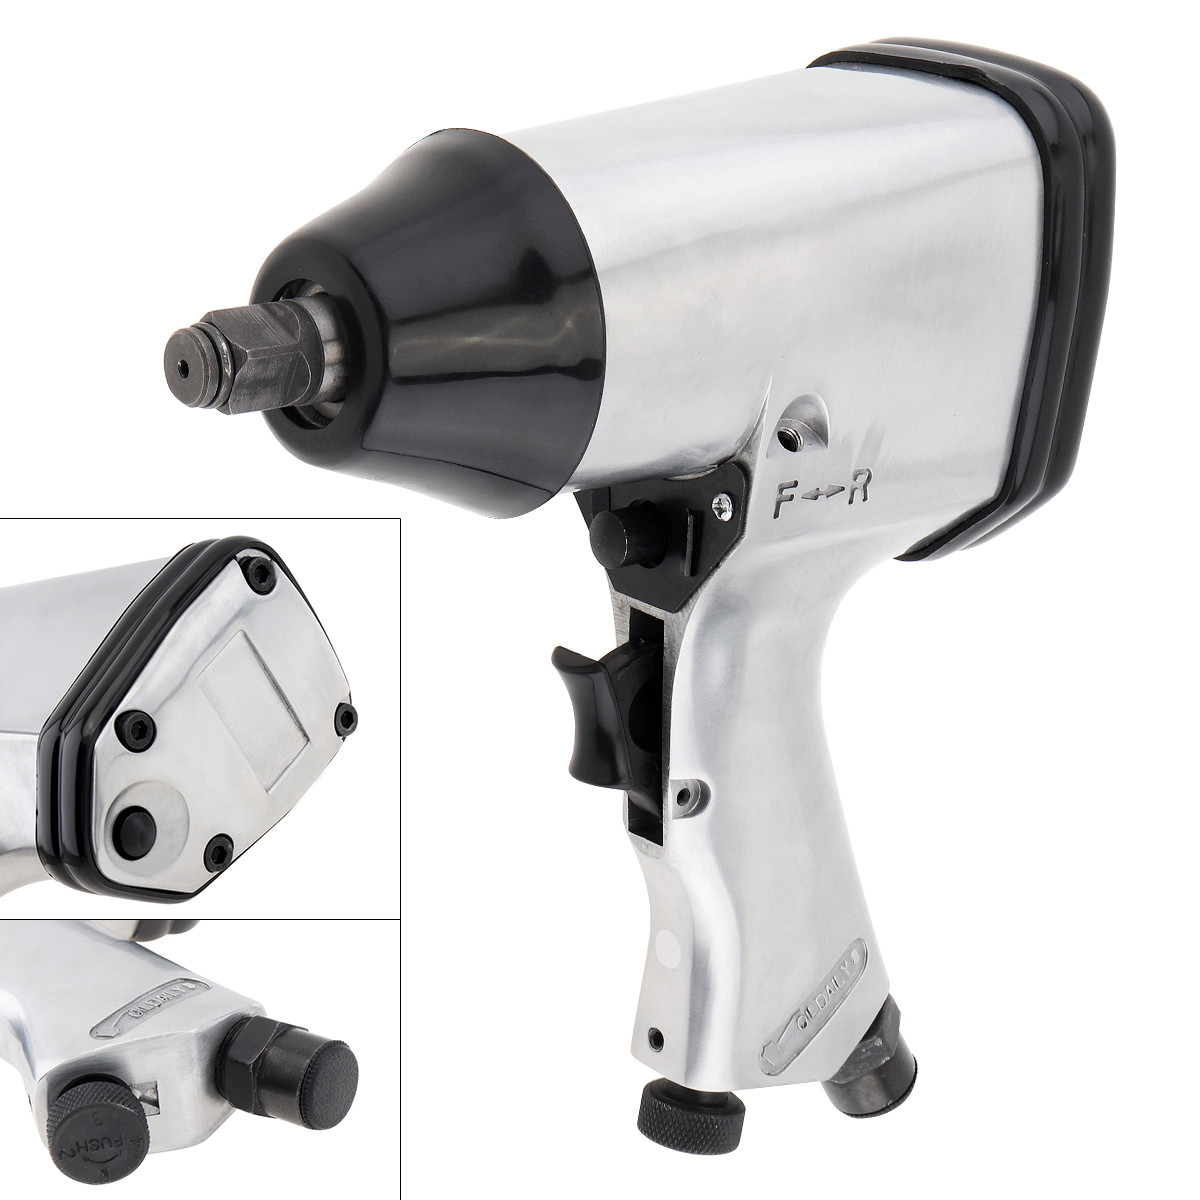 7000rpm Pneumatic Air Wrench Torque Impact Wrench With 1/2 Inch Square Head And Hex Wrench For Car Motorcycle Maintenance